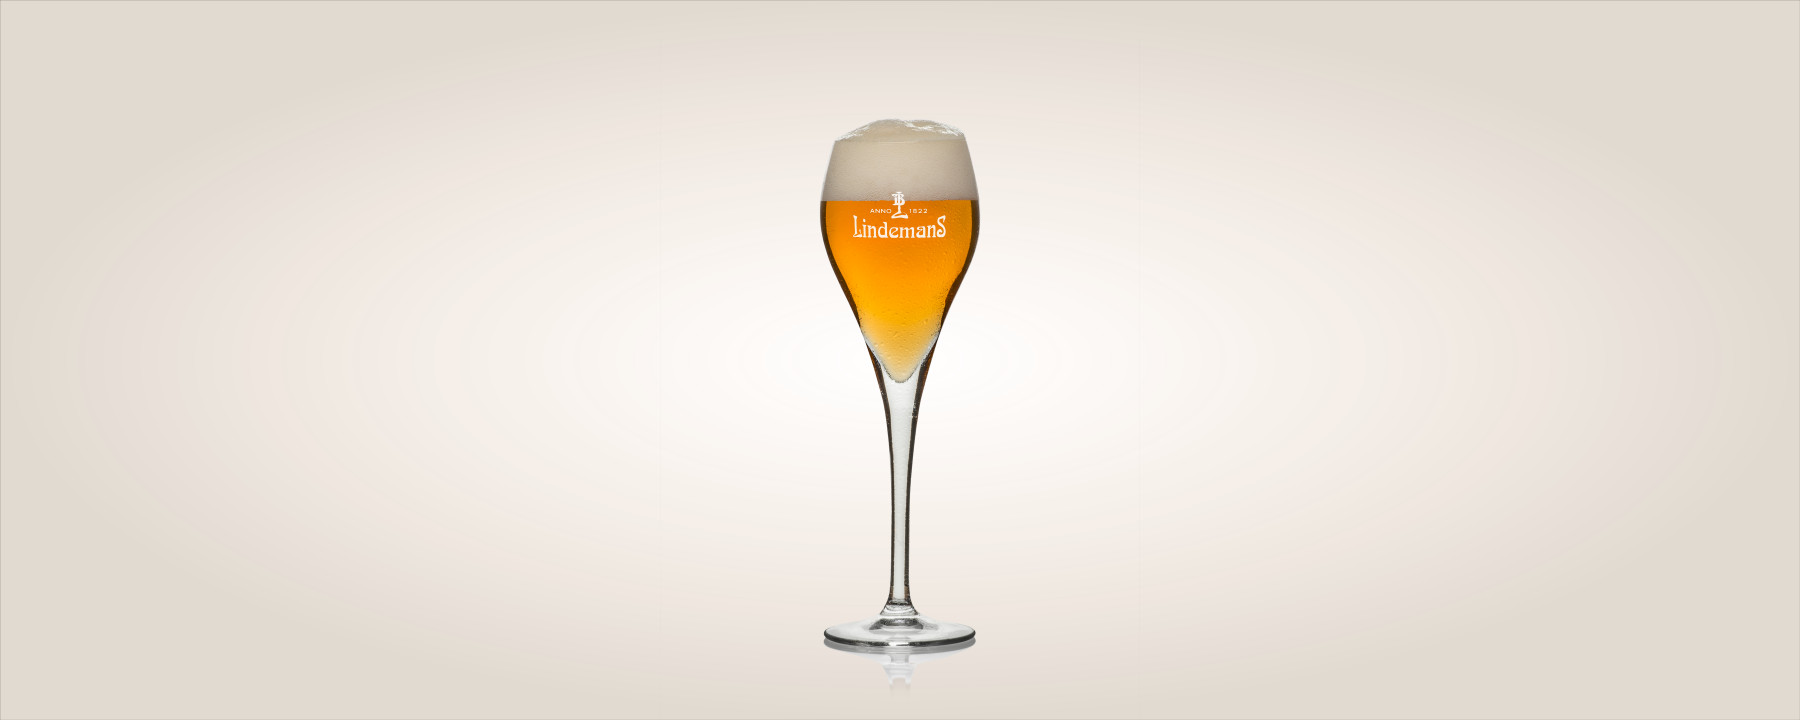 Gueuze in glass